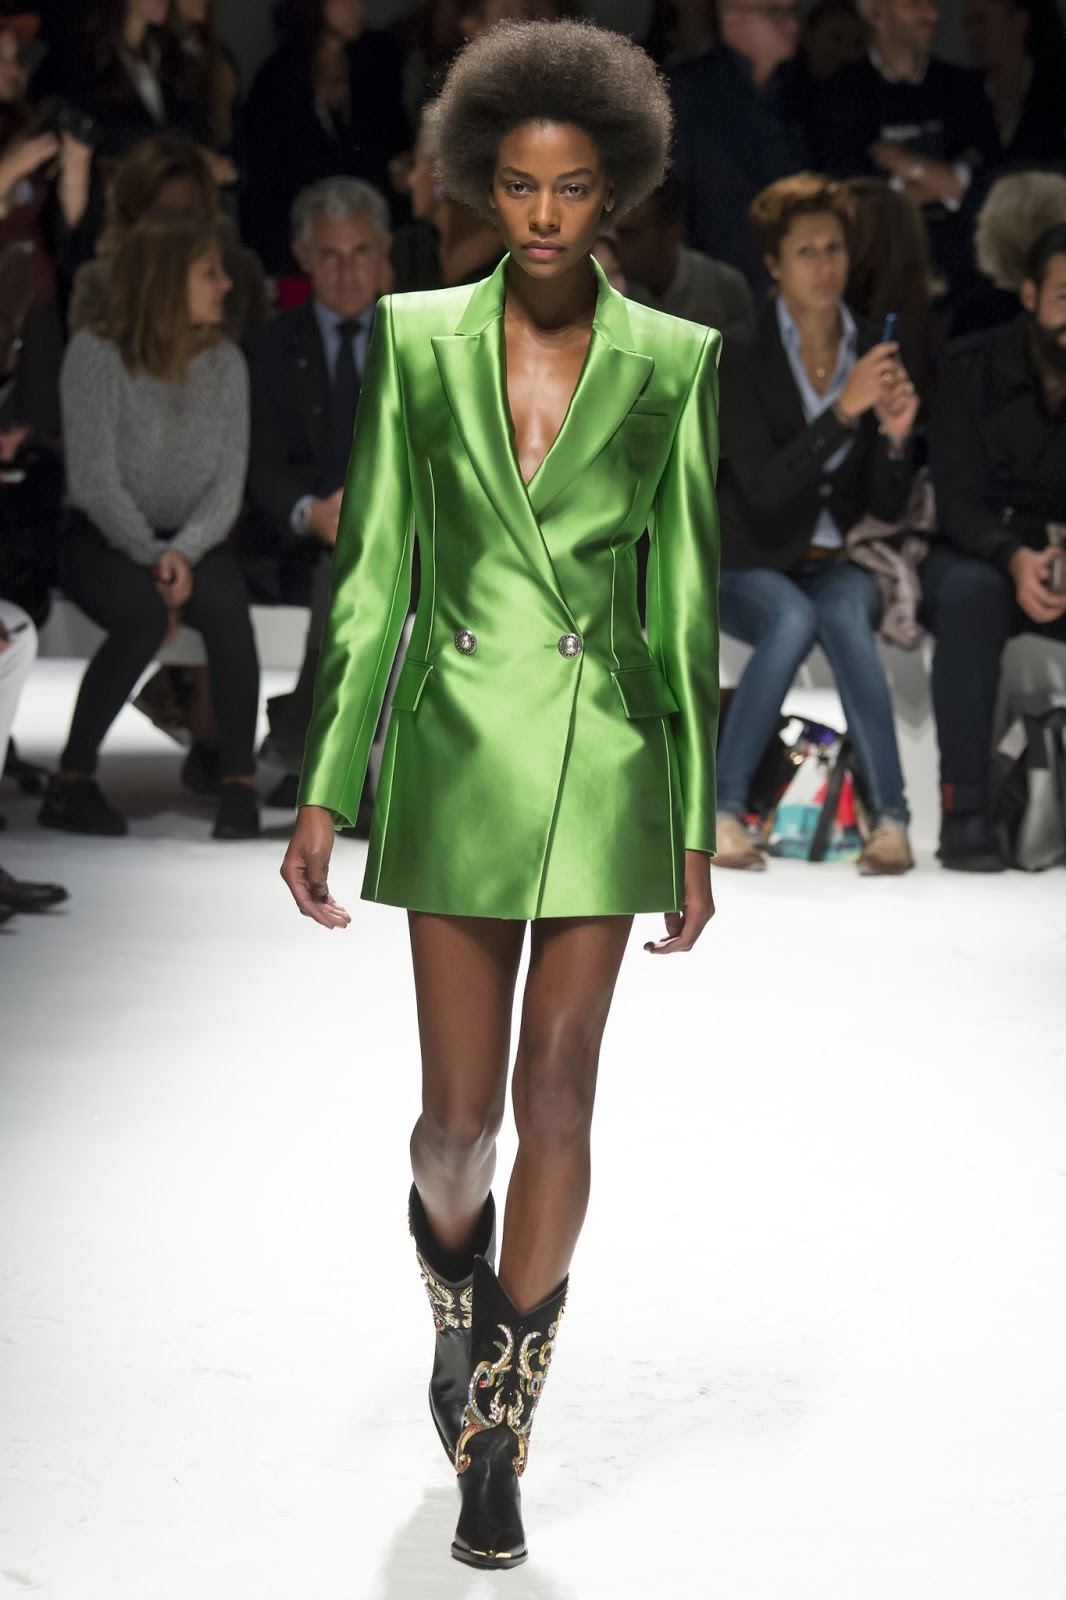 Pantone colour report & spring summer 2016 fashion trends / green flash at Fausto Puglisi Spring/Summer 2016 via www.fashionedbylove.co.uk British fashion & style blog